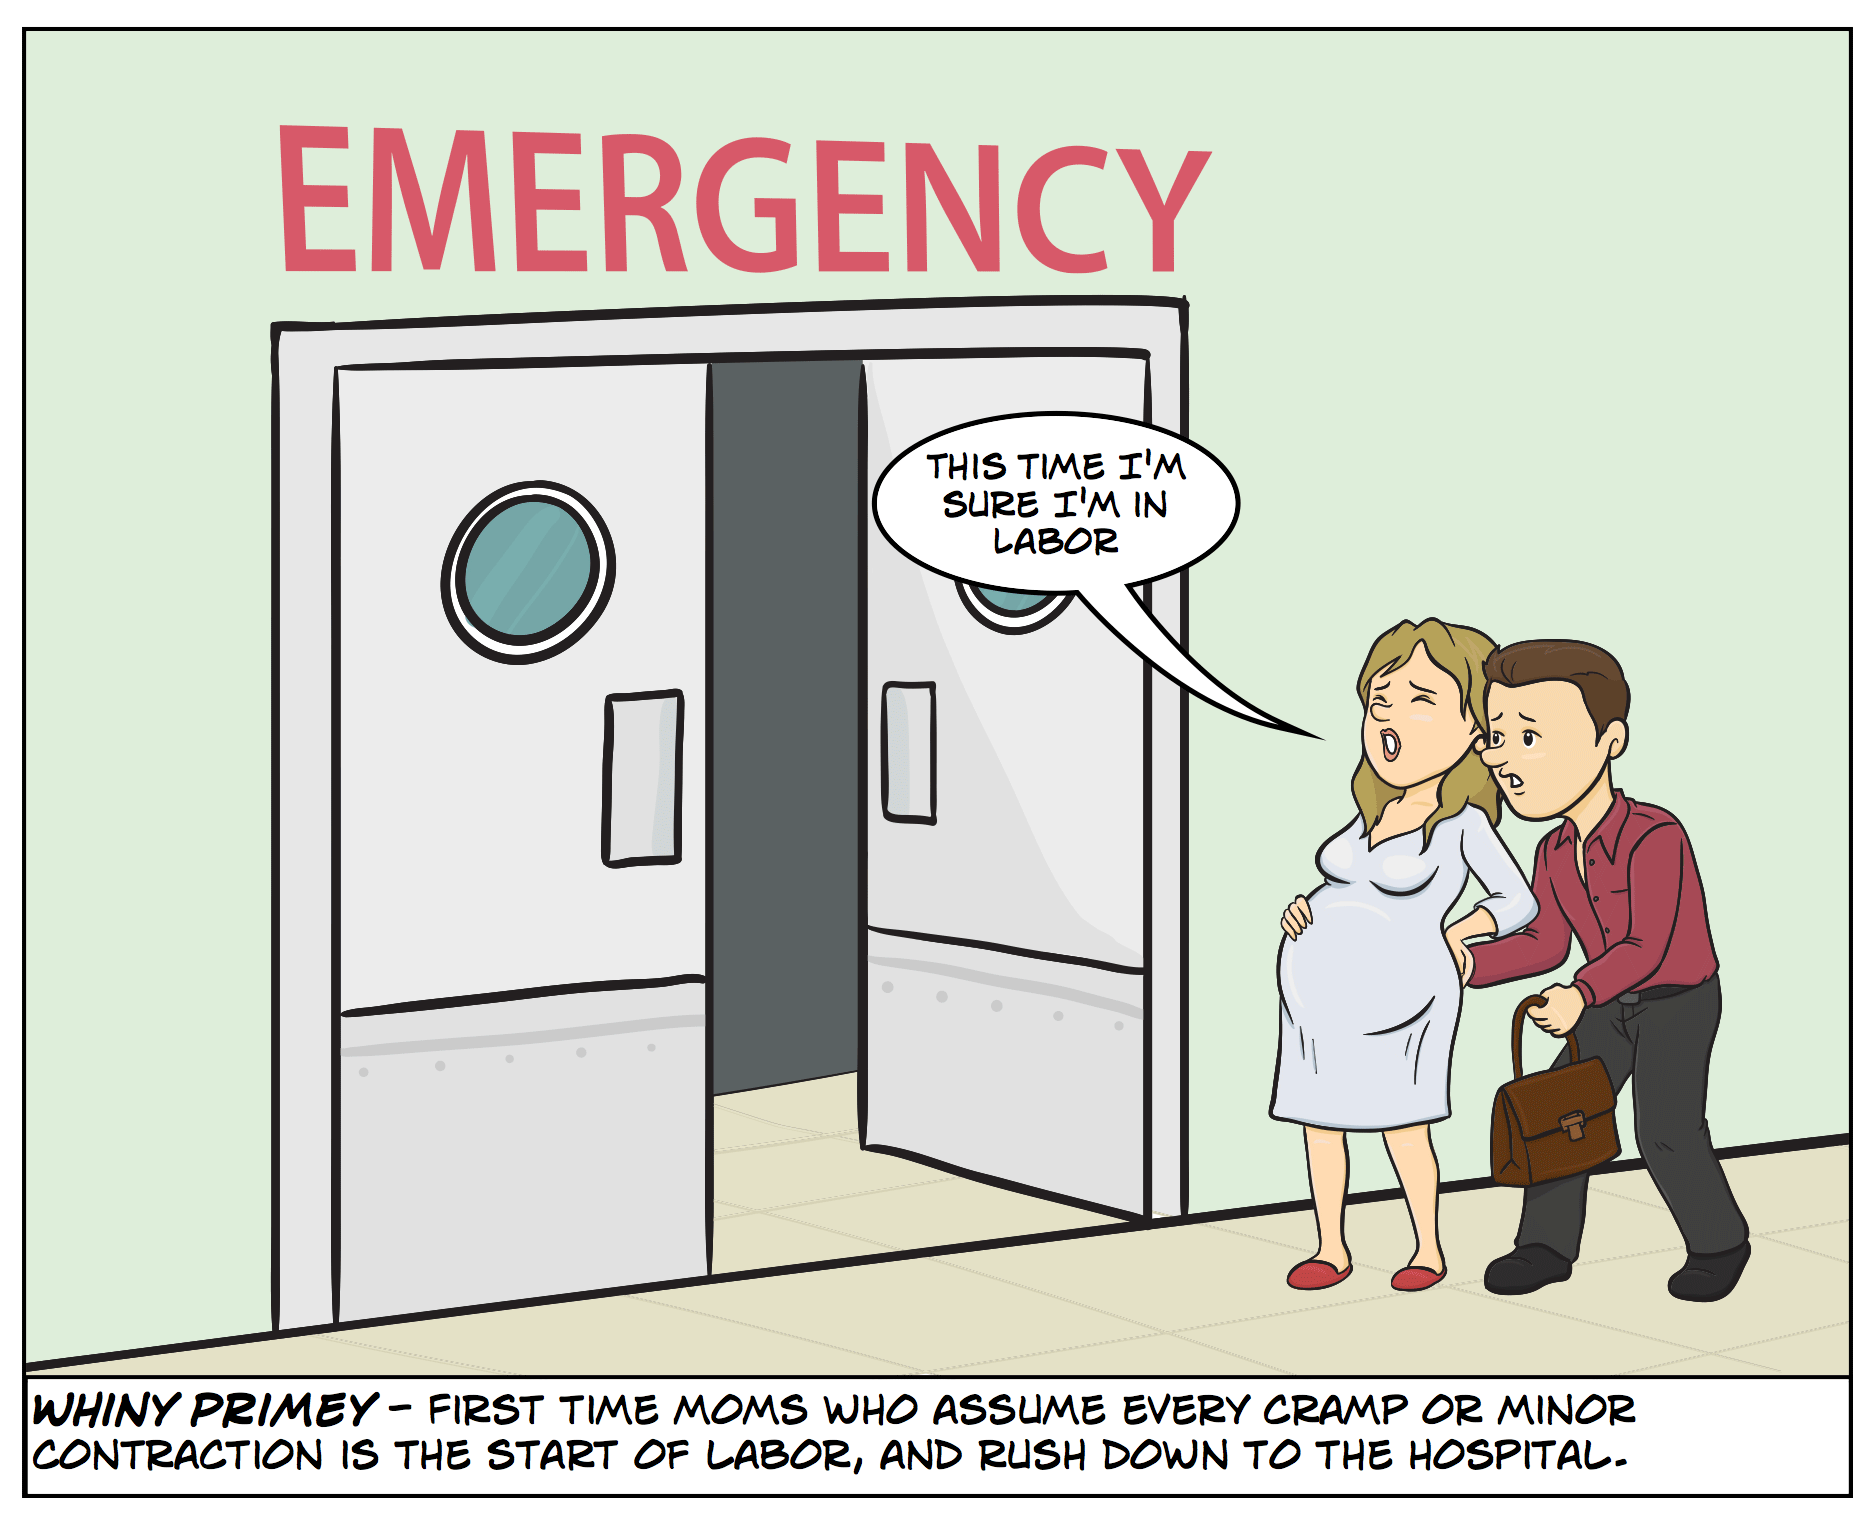 Whiny Primey - First time moms who assume every cramp or minor contraction is the start of labor, and rush down to the hospital.